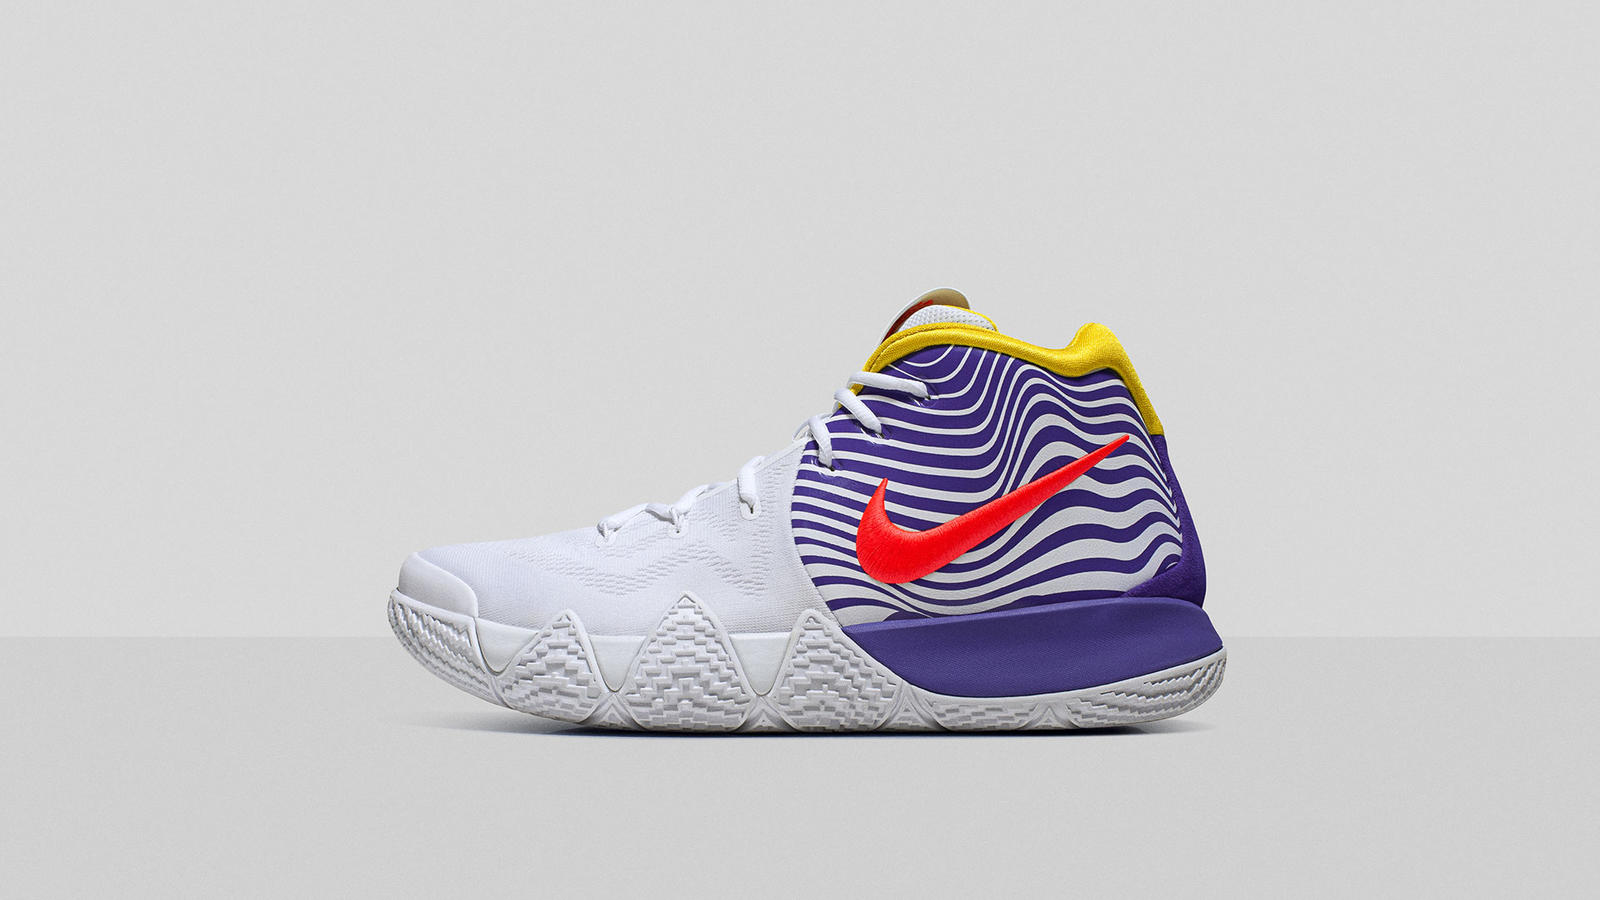 Wnbaallstargame2018 kyrie hoops 014 native 1600